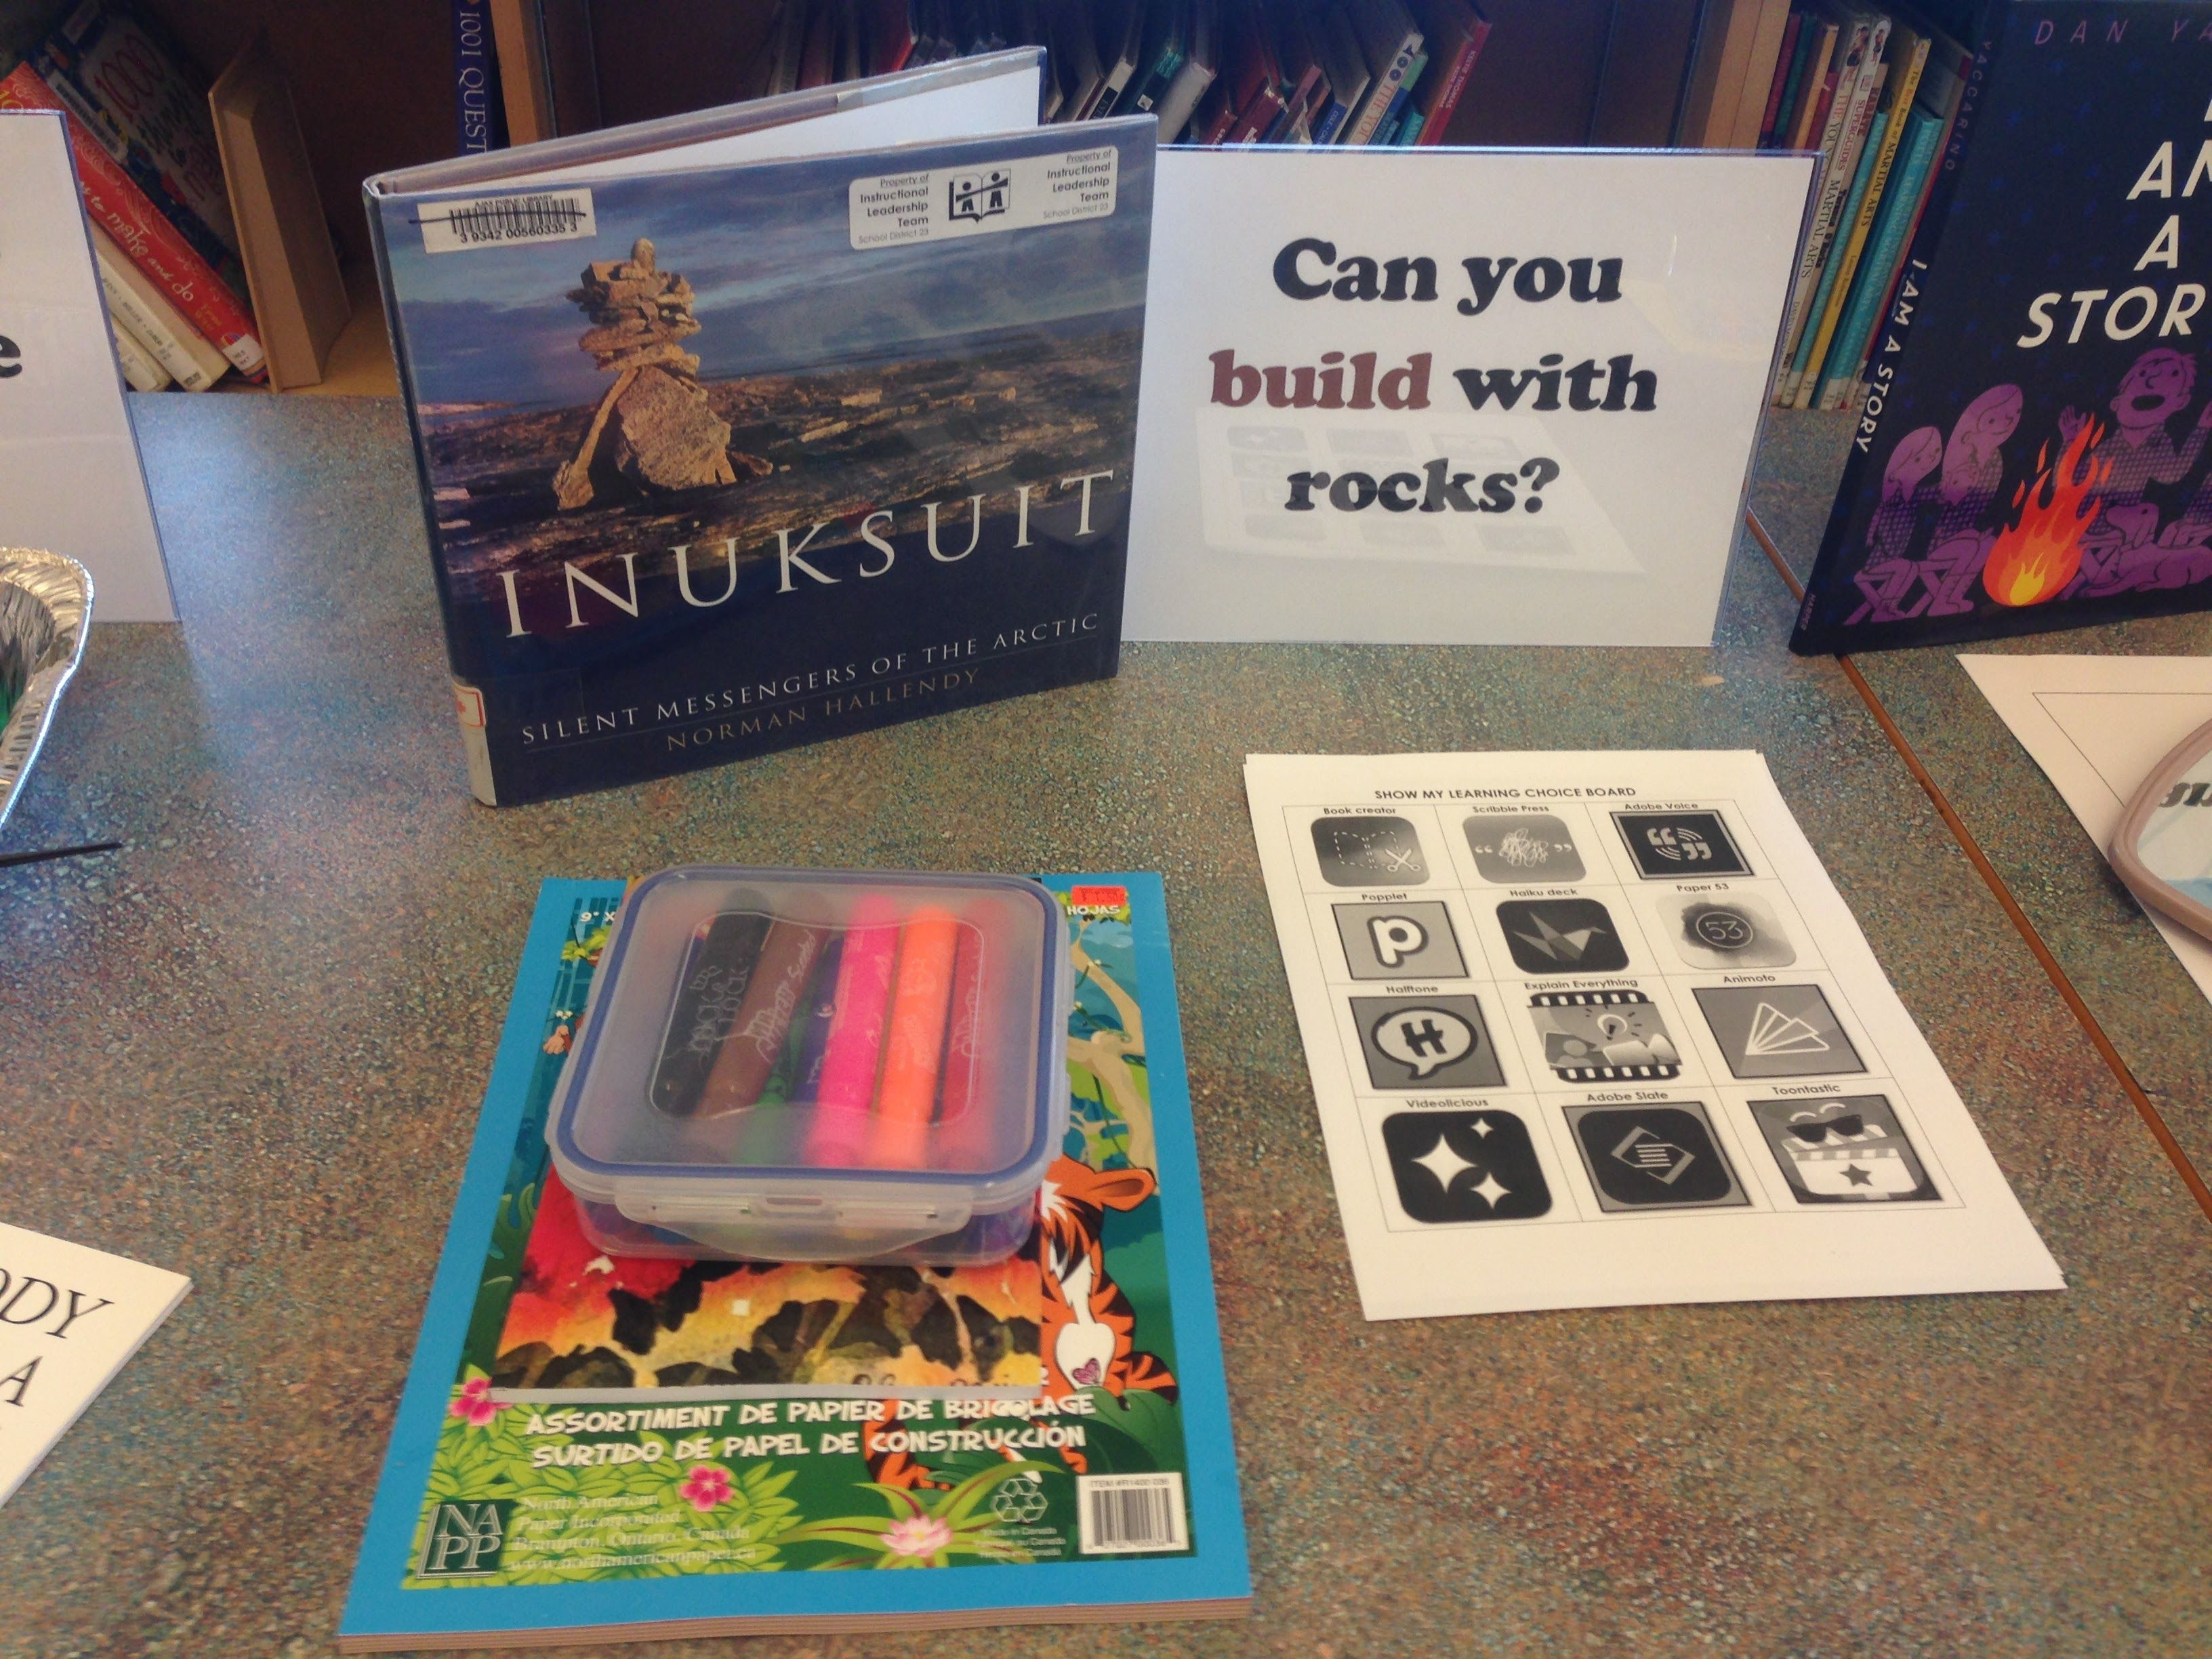 Provocation Table What Can You Build With Rocks Provocations Book Cover Canning